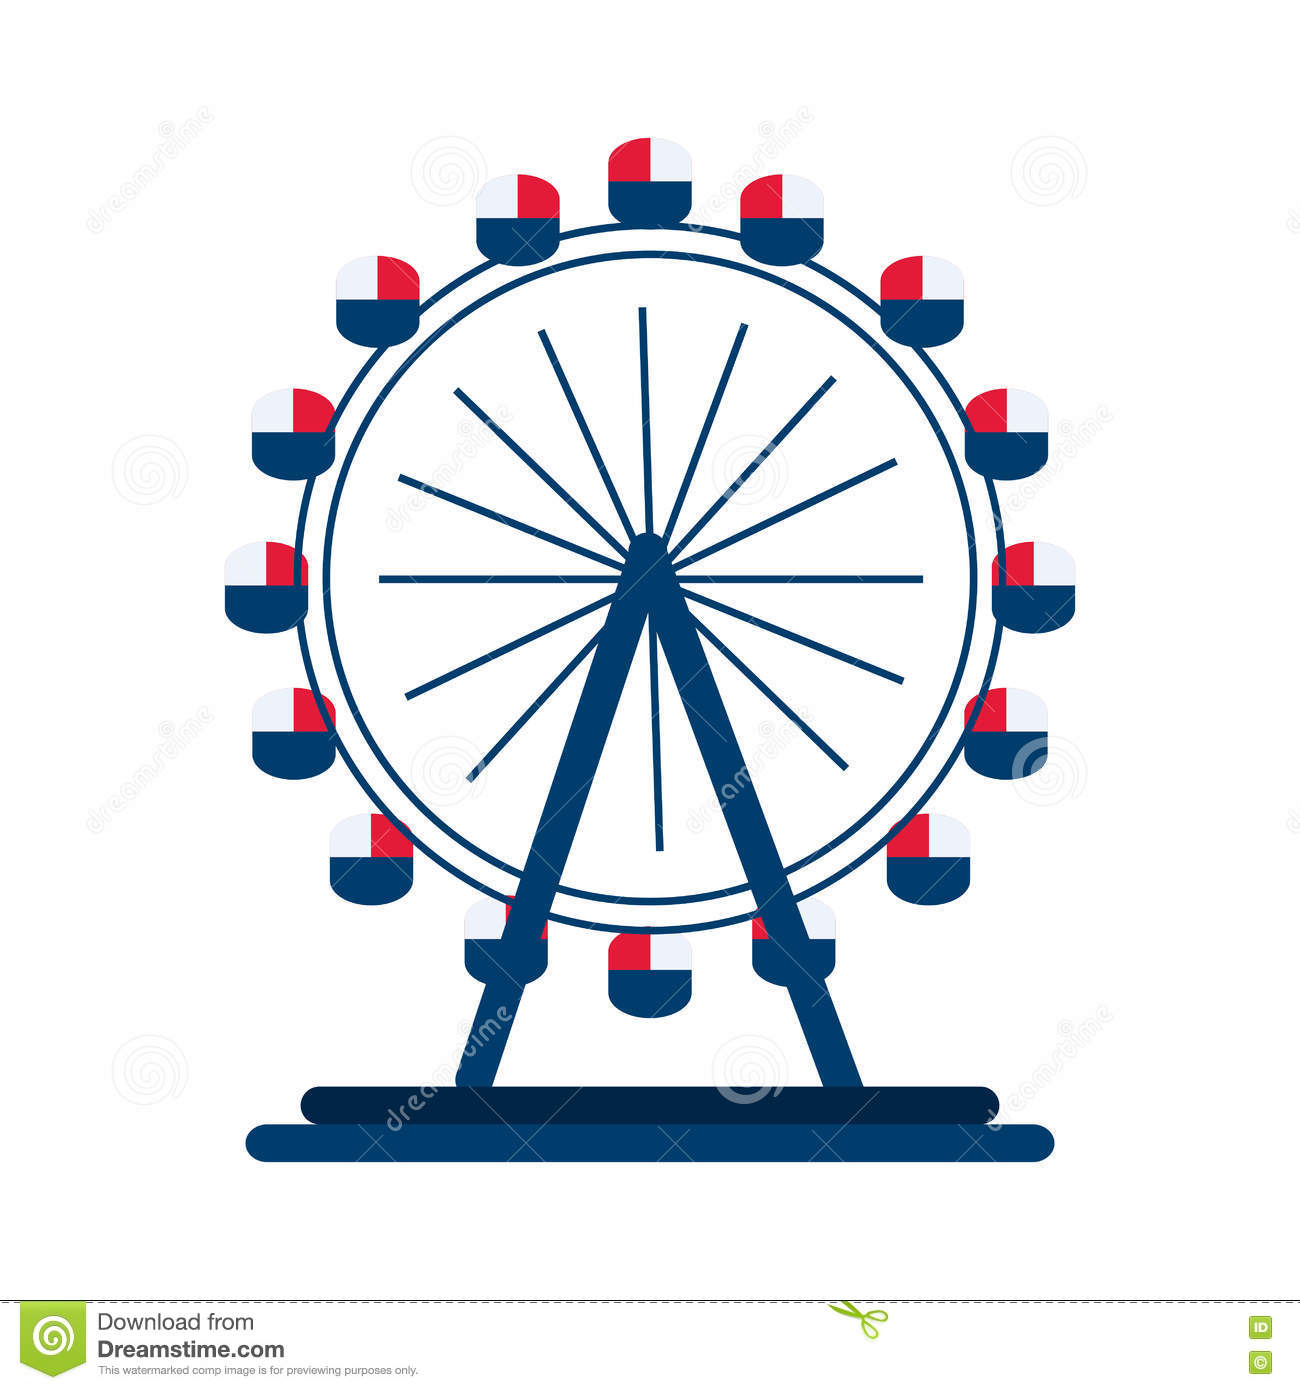 London eye wheel